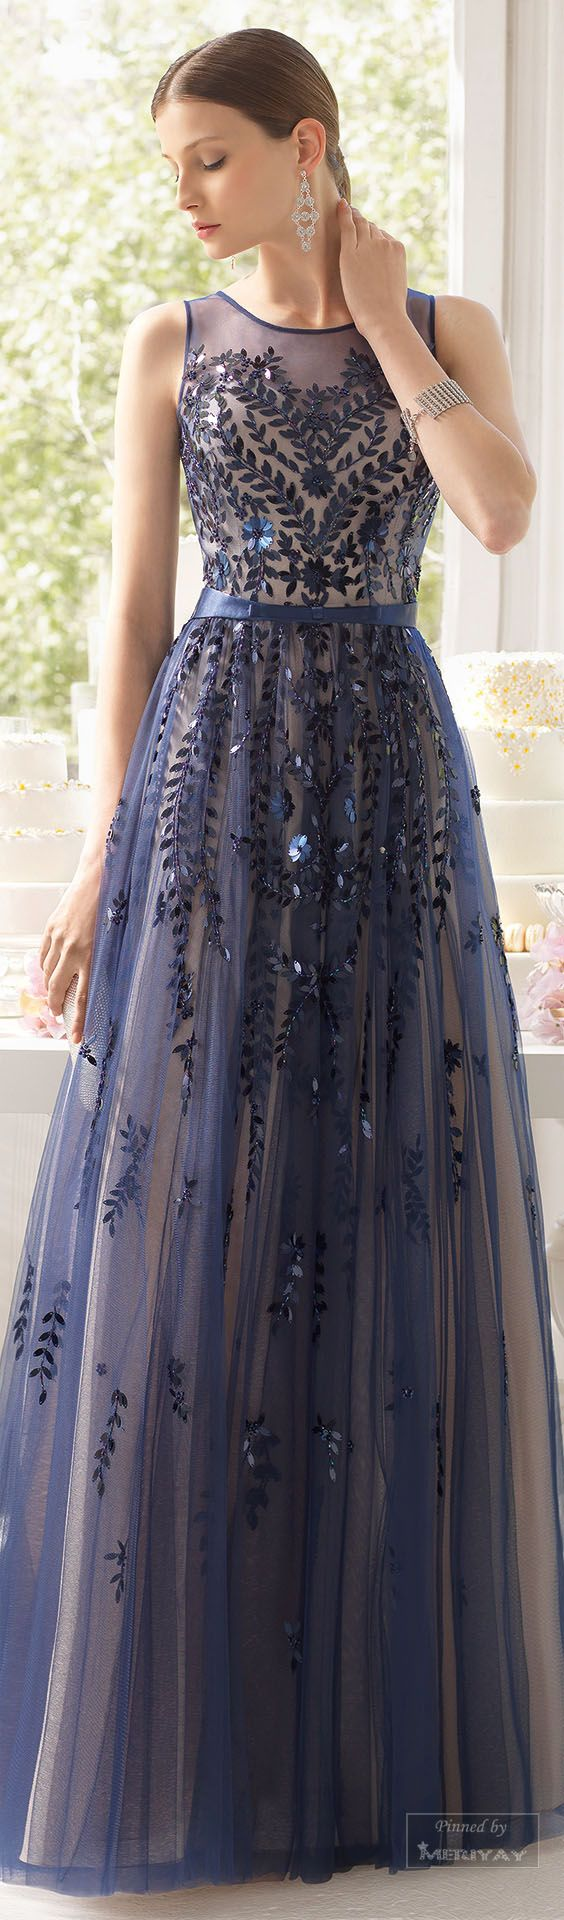 best dressess images on pinterest prom dresses ball gown and